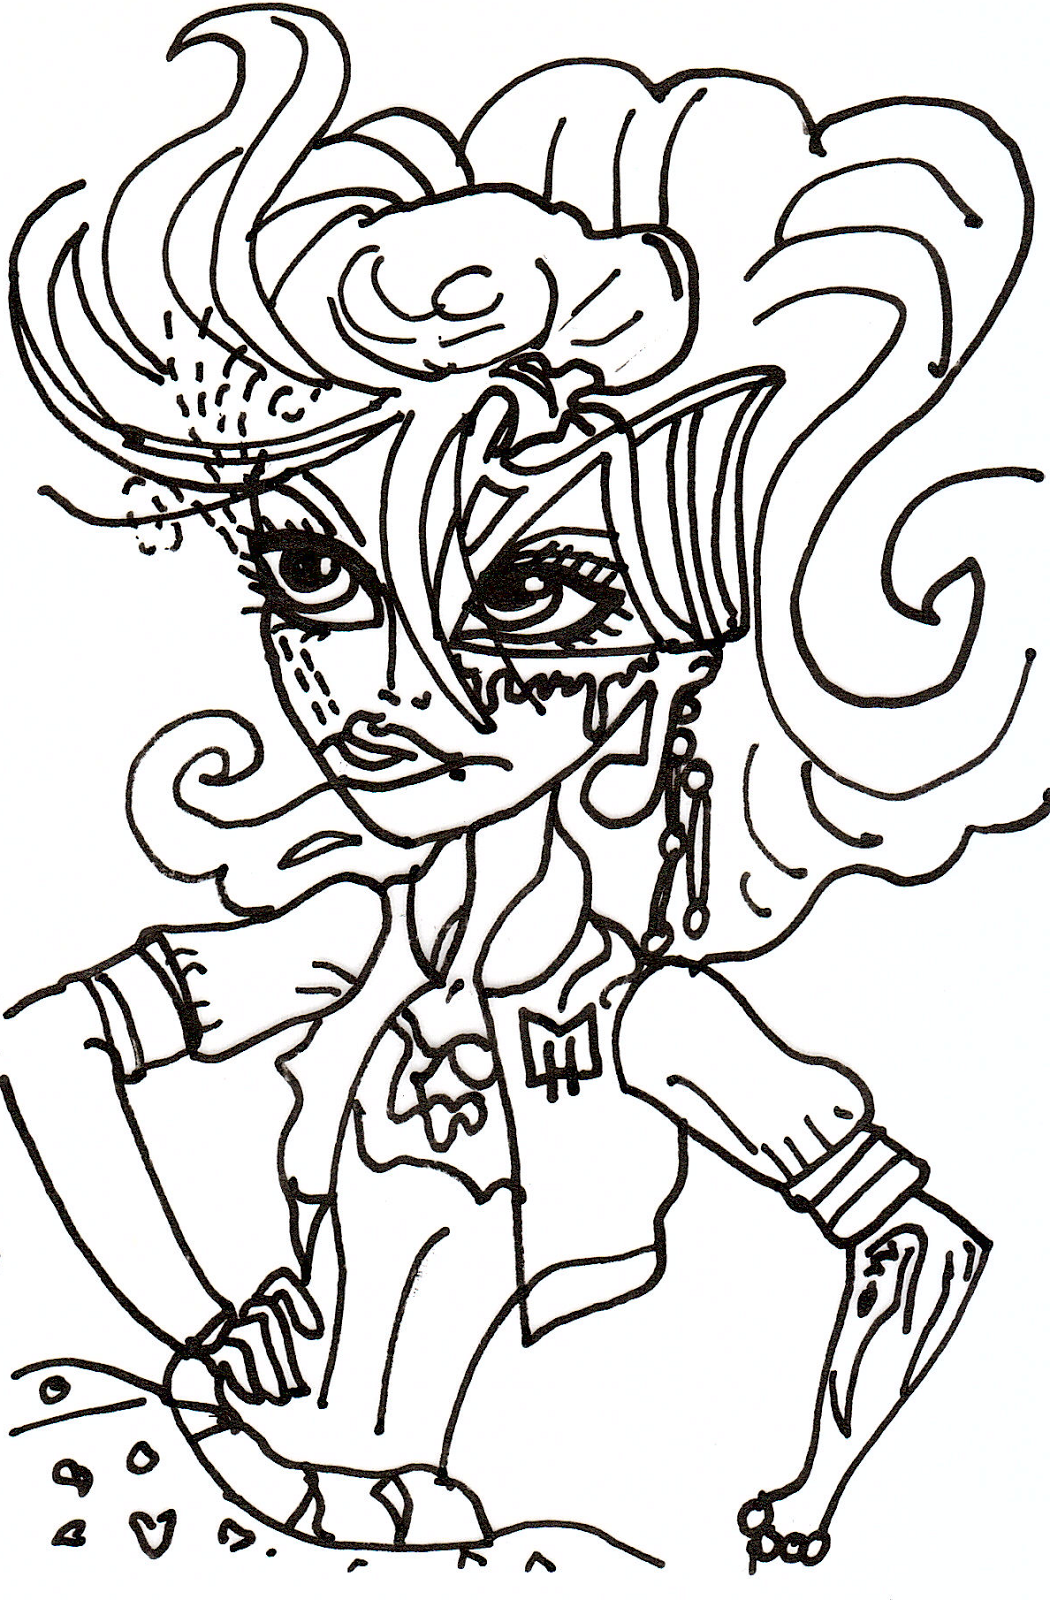 Obsessed image for free monster high printable